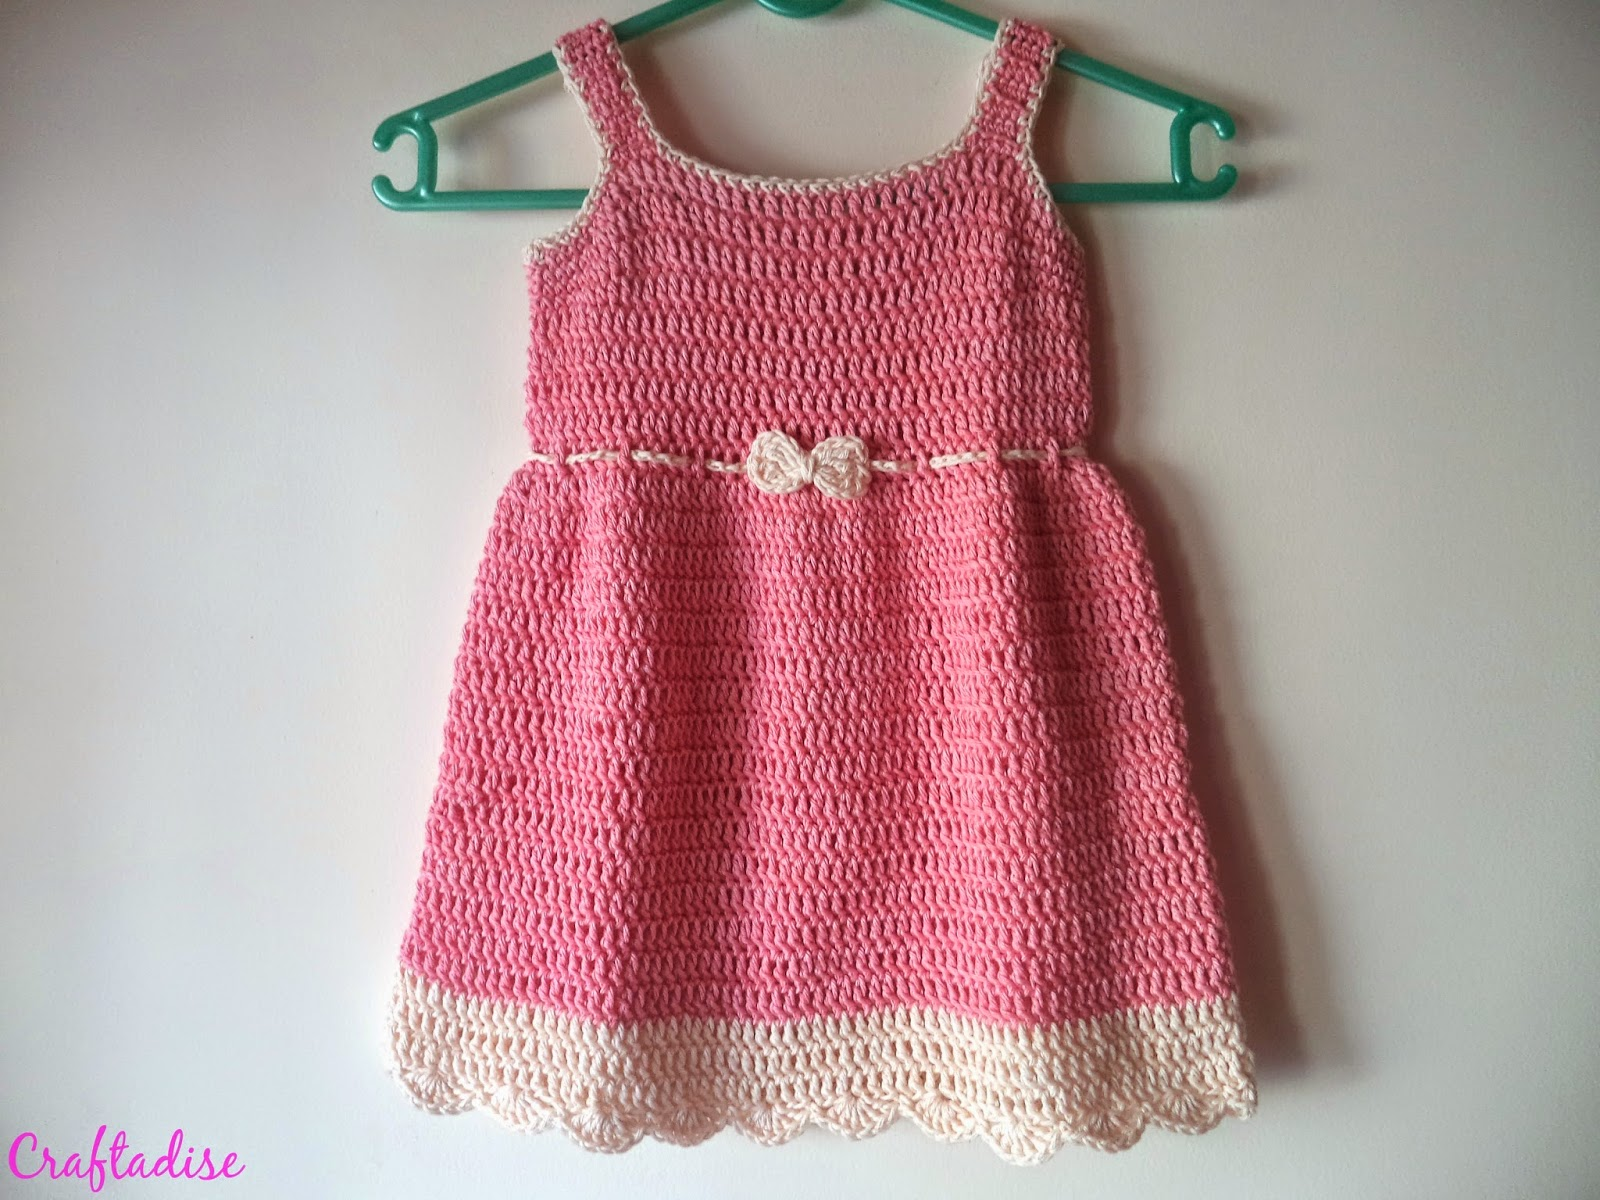 Free Crochet Pattern Summer Dress : Made In Craftadise Top Art & Crafts, Home Decor blog in ...